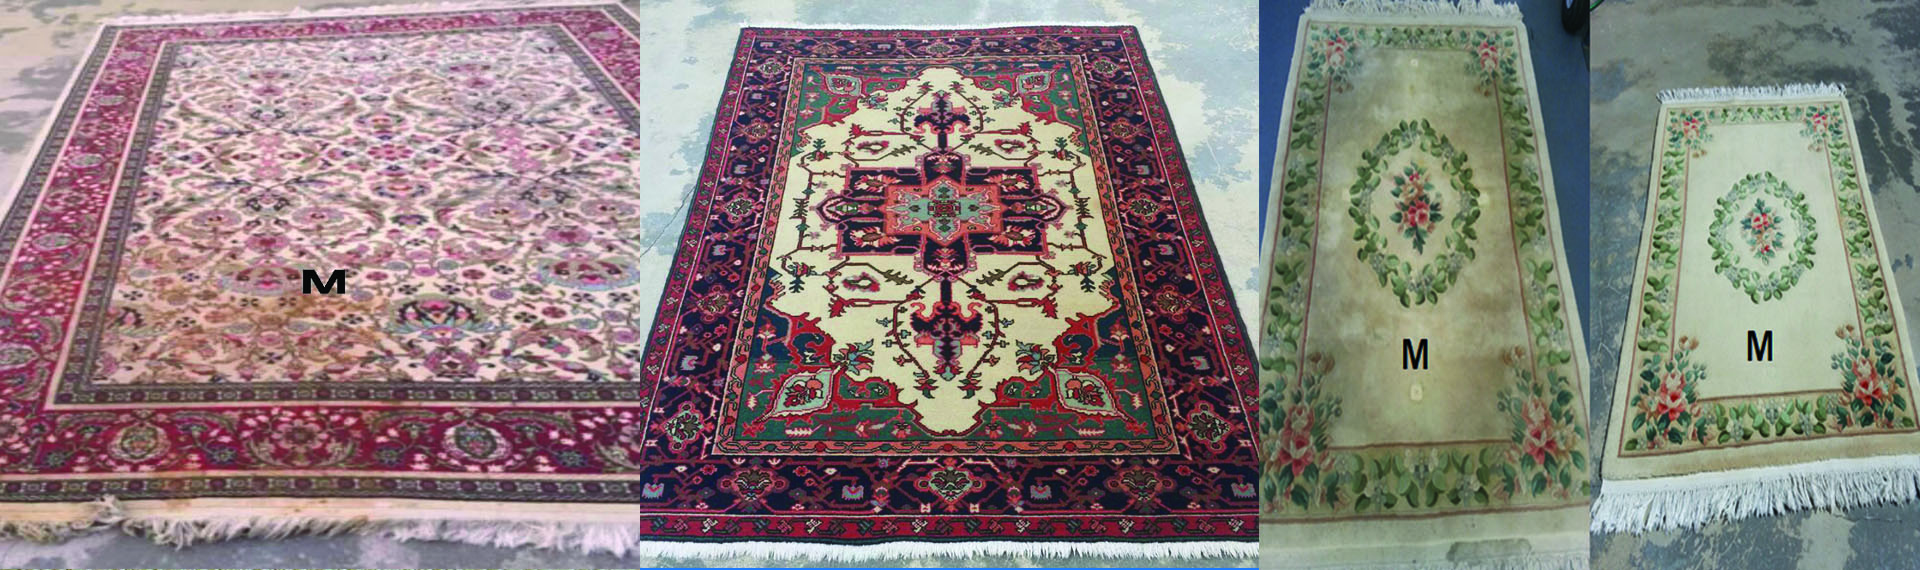 Oriental Rug Hand Cleaning Master & Repair Winter Park FL